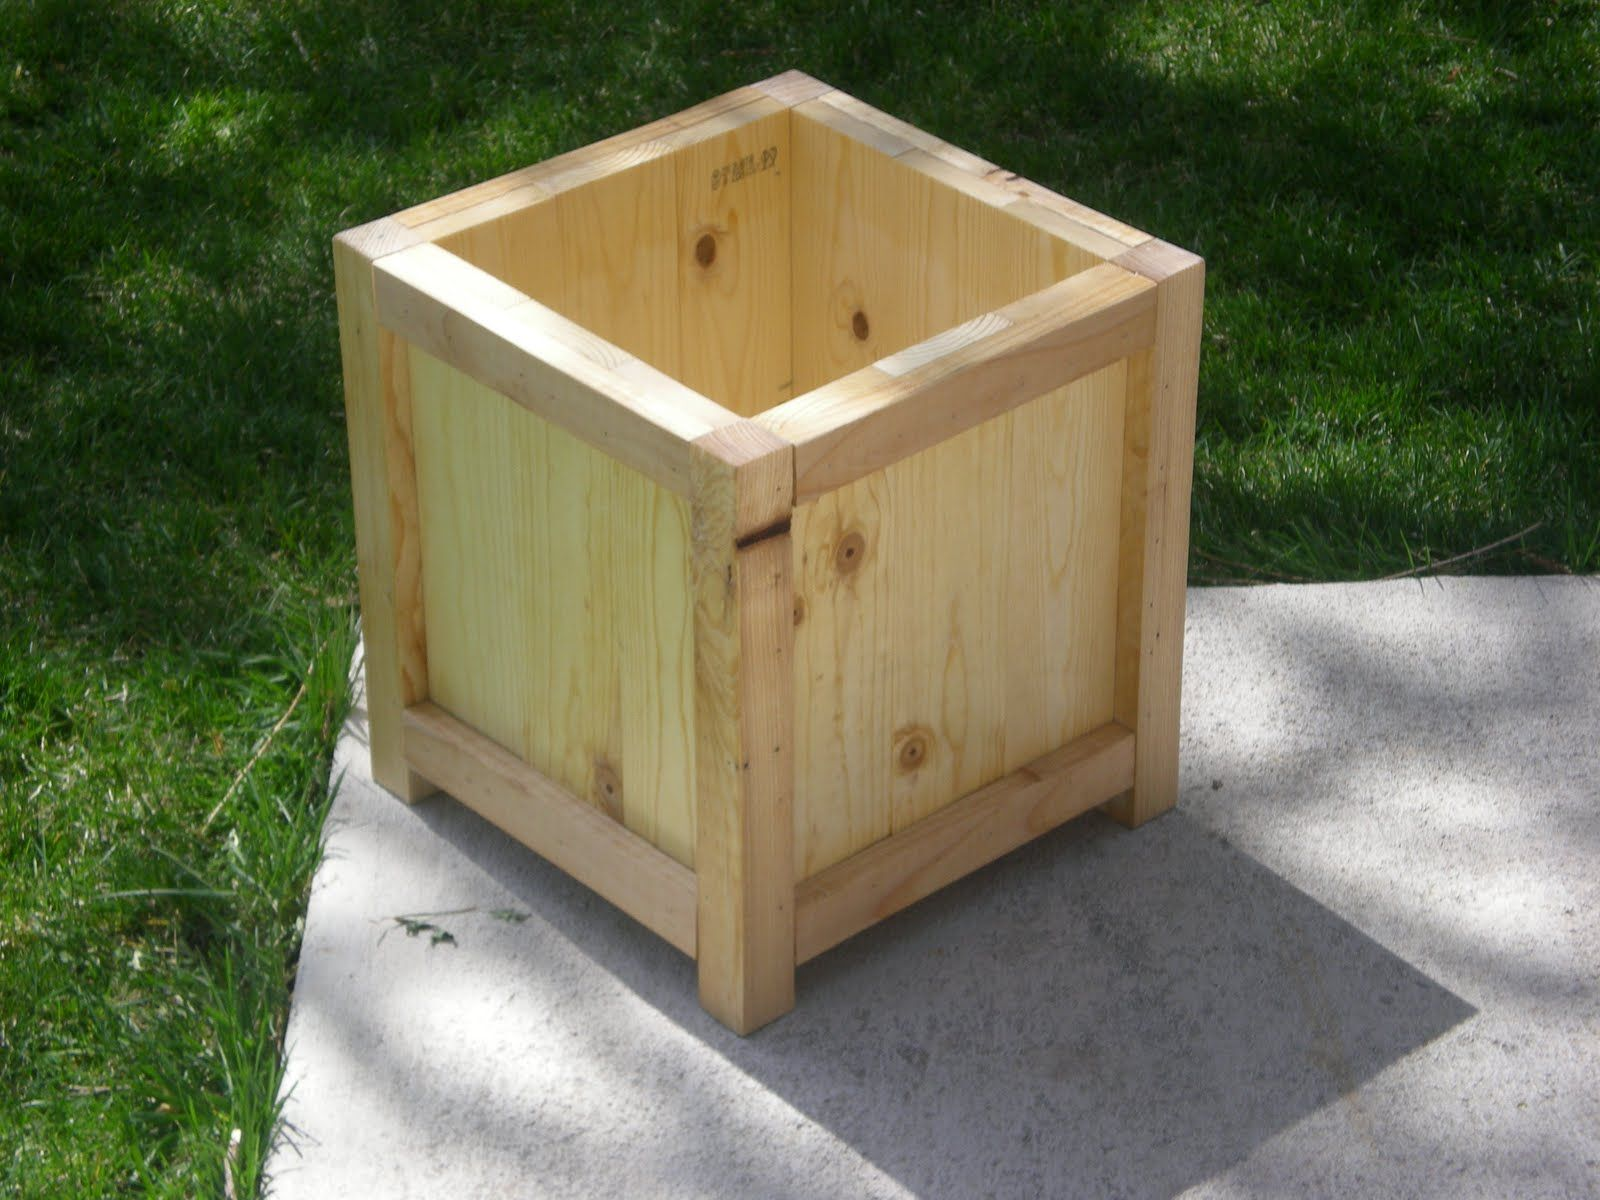 simple wooden planter box to make home wooden flower boxes wood flower box wooden planters. Black Bedroom Furniture Sets. Home Design Ideas